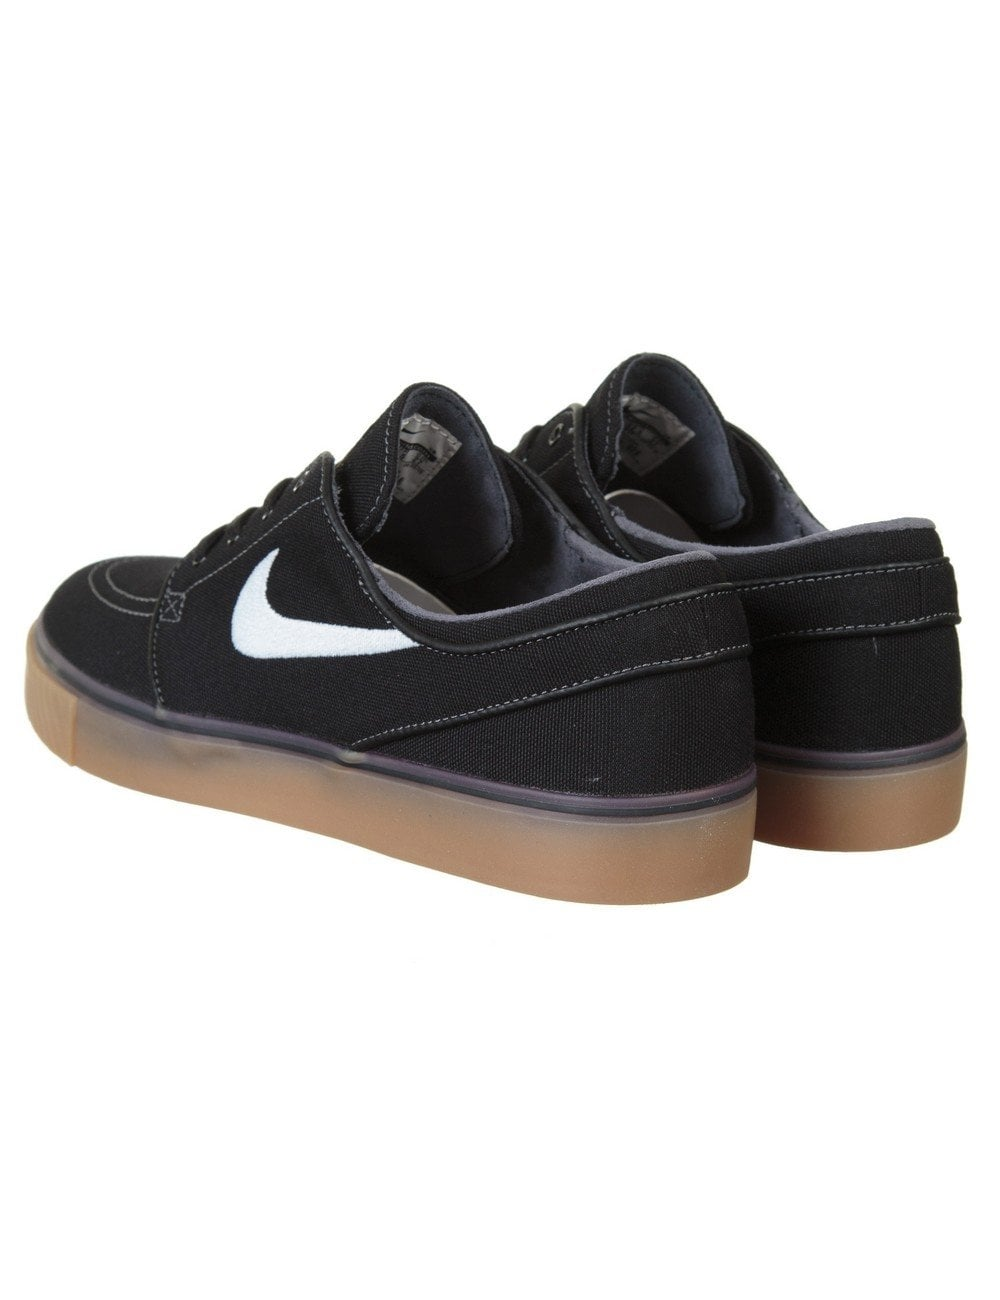 8bc2db213ae Nike SB Stefan Janoski Shoes - Black Gum Sole - Footwear from Fat ...